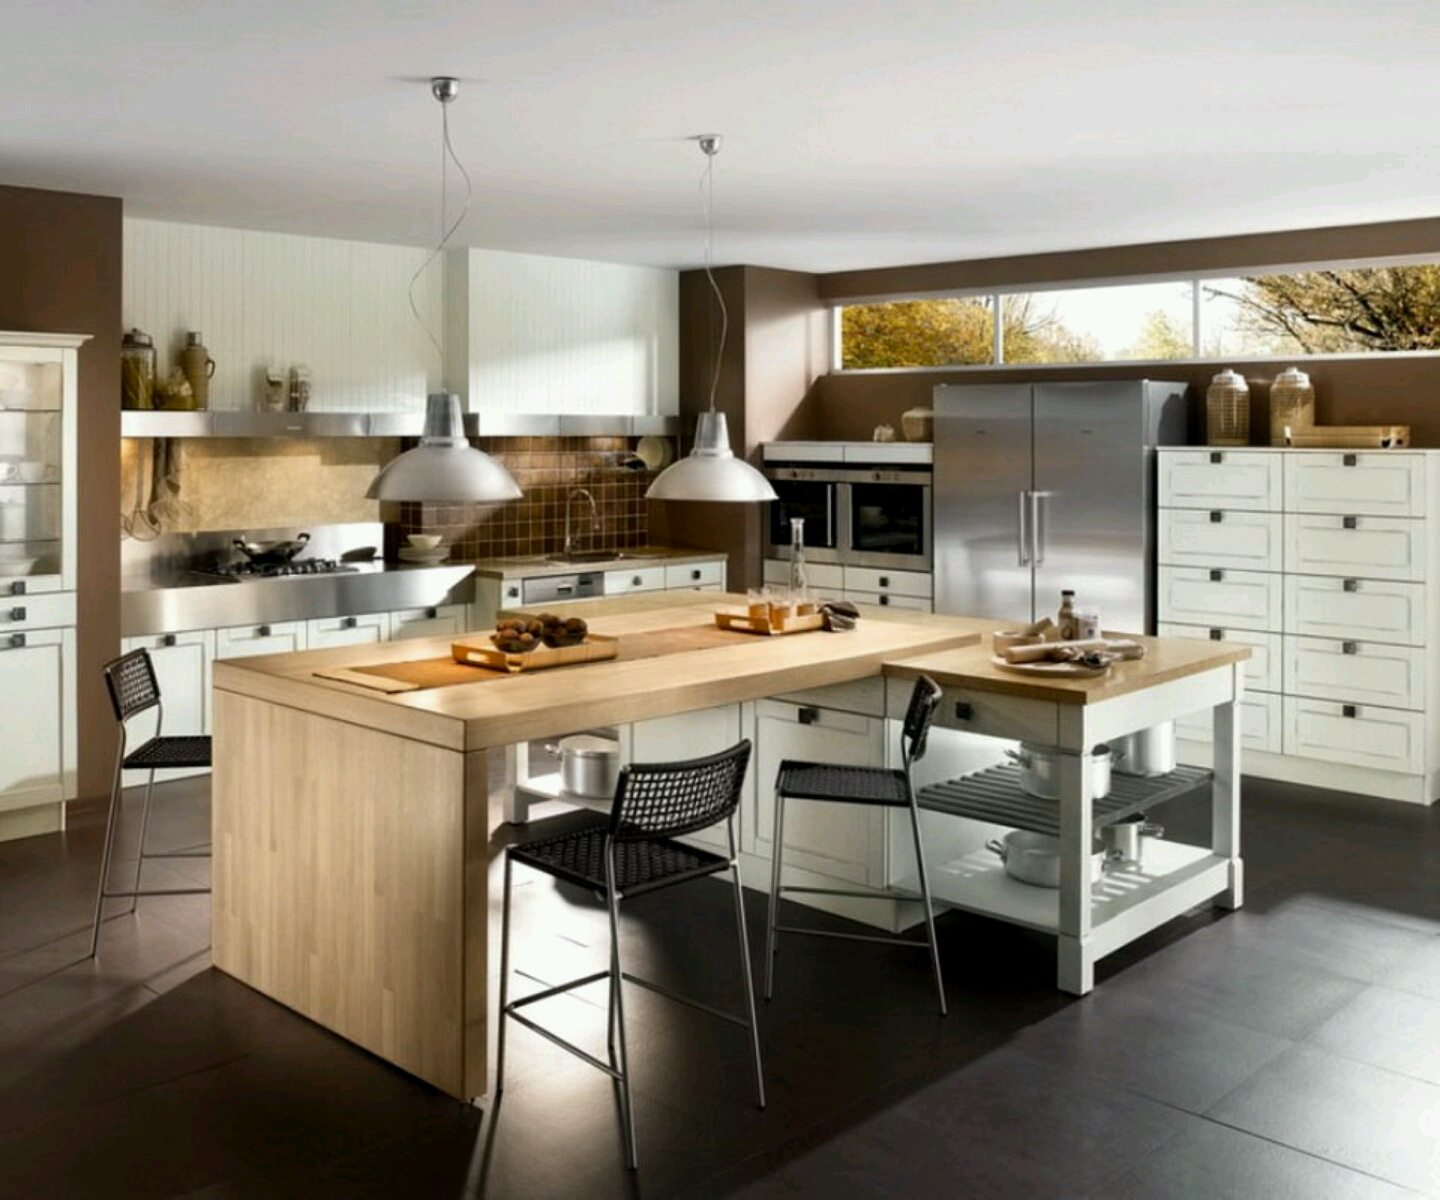 Modern Contemporary Kitchen Design Ideas ~ New home designs latest modern kitchen ideas